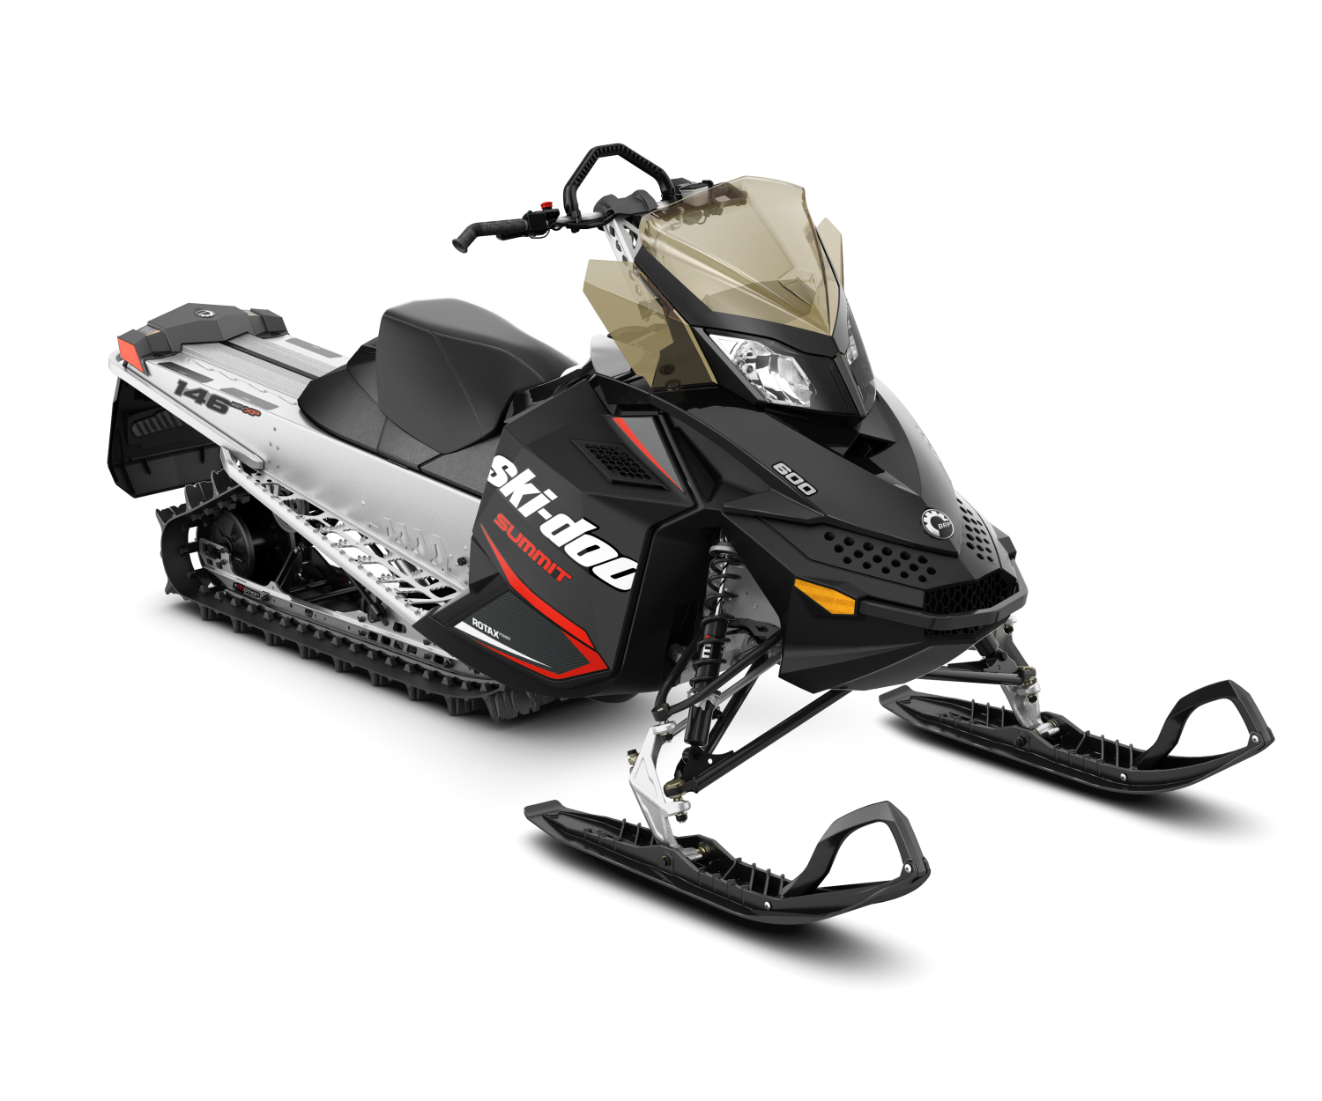 2018 Ski-Doo Summit Sport 600 Carb in Omaha, Nebraska